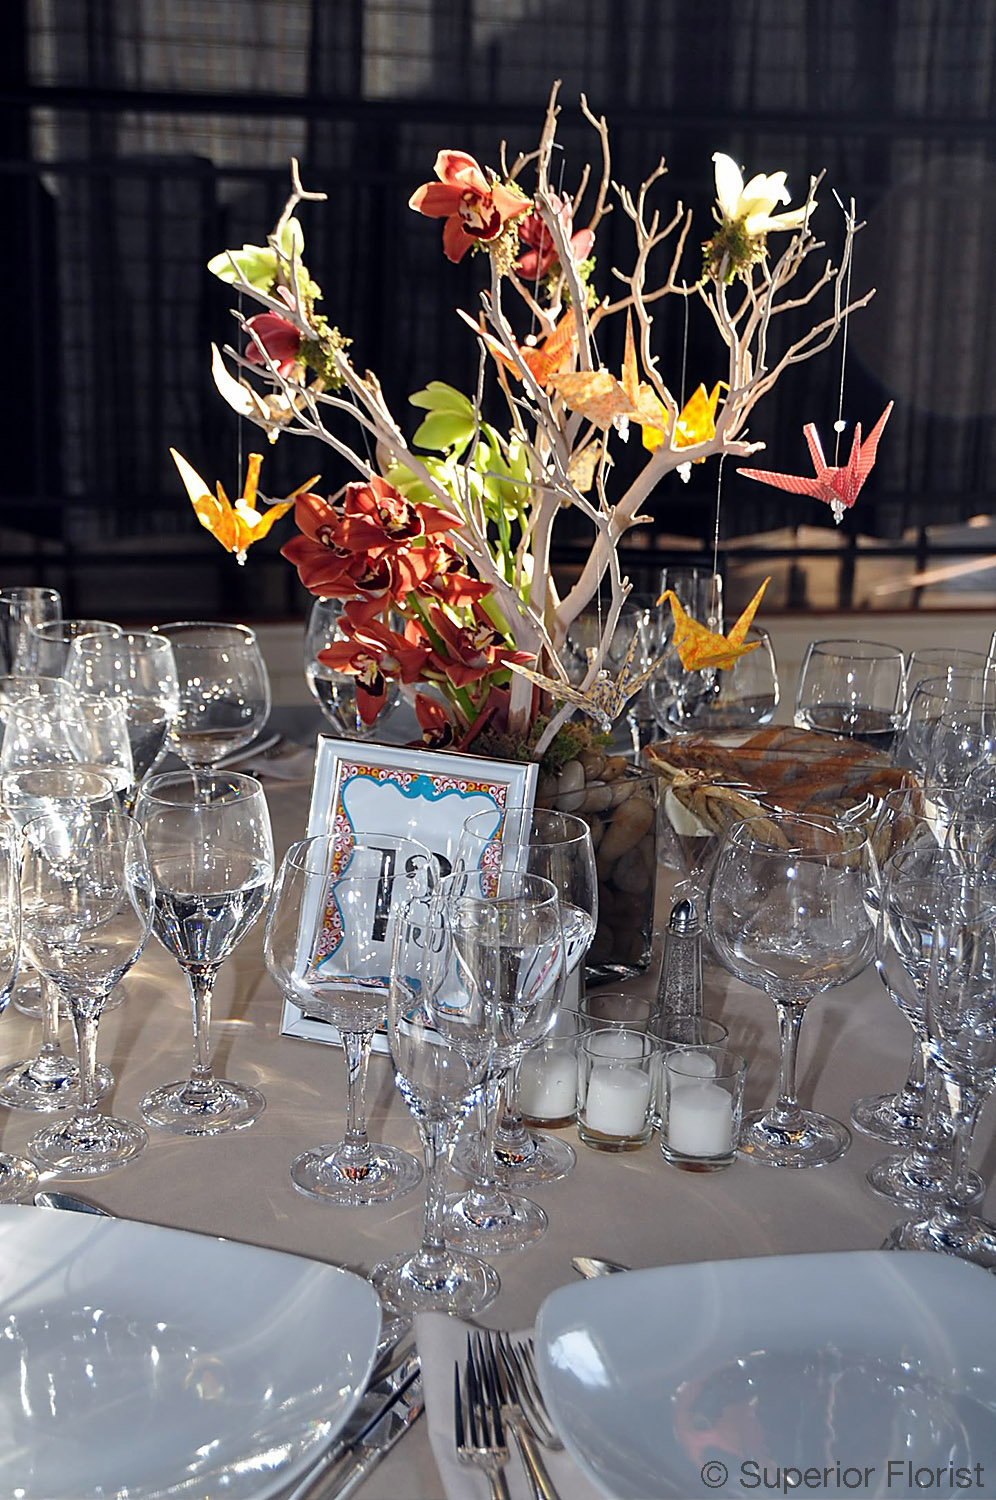 Superior Florist – Centerpieces:  Manzanita branches, miniature Cymbidiums, hanging votive candles and origami cranes (made by the bride). River rocks in bottom of glass cube vase.